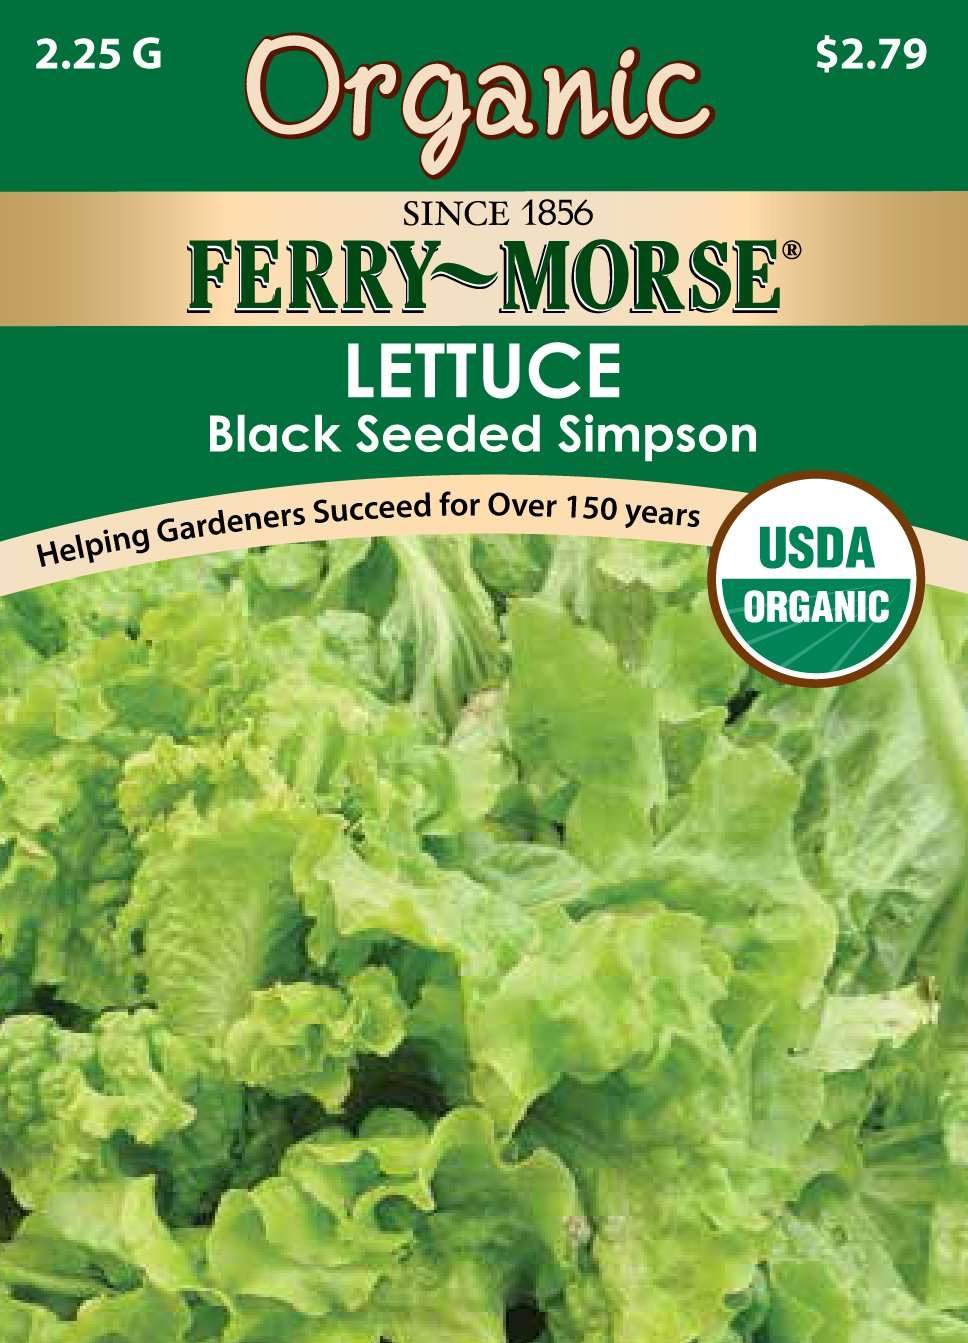 Ferry-Morse Organic Lettuce - Black Seeded Simpson Seeds